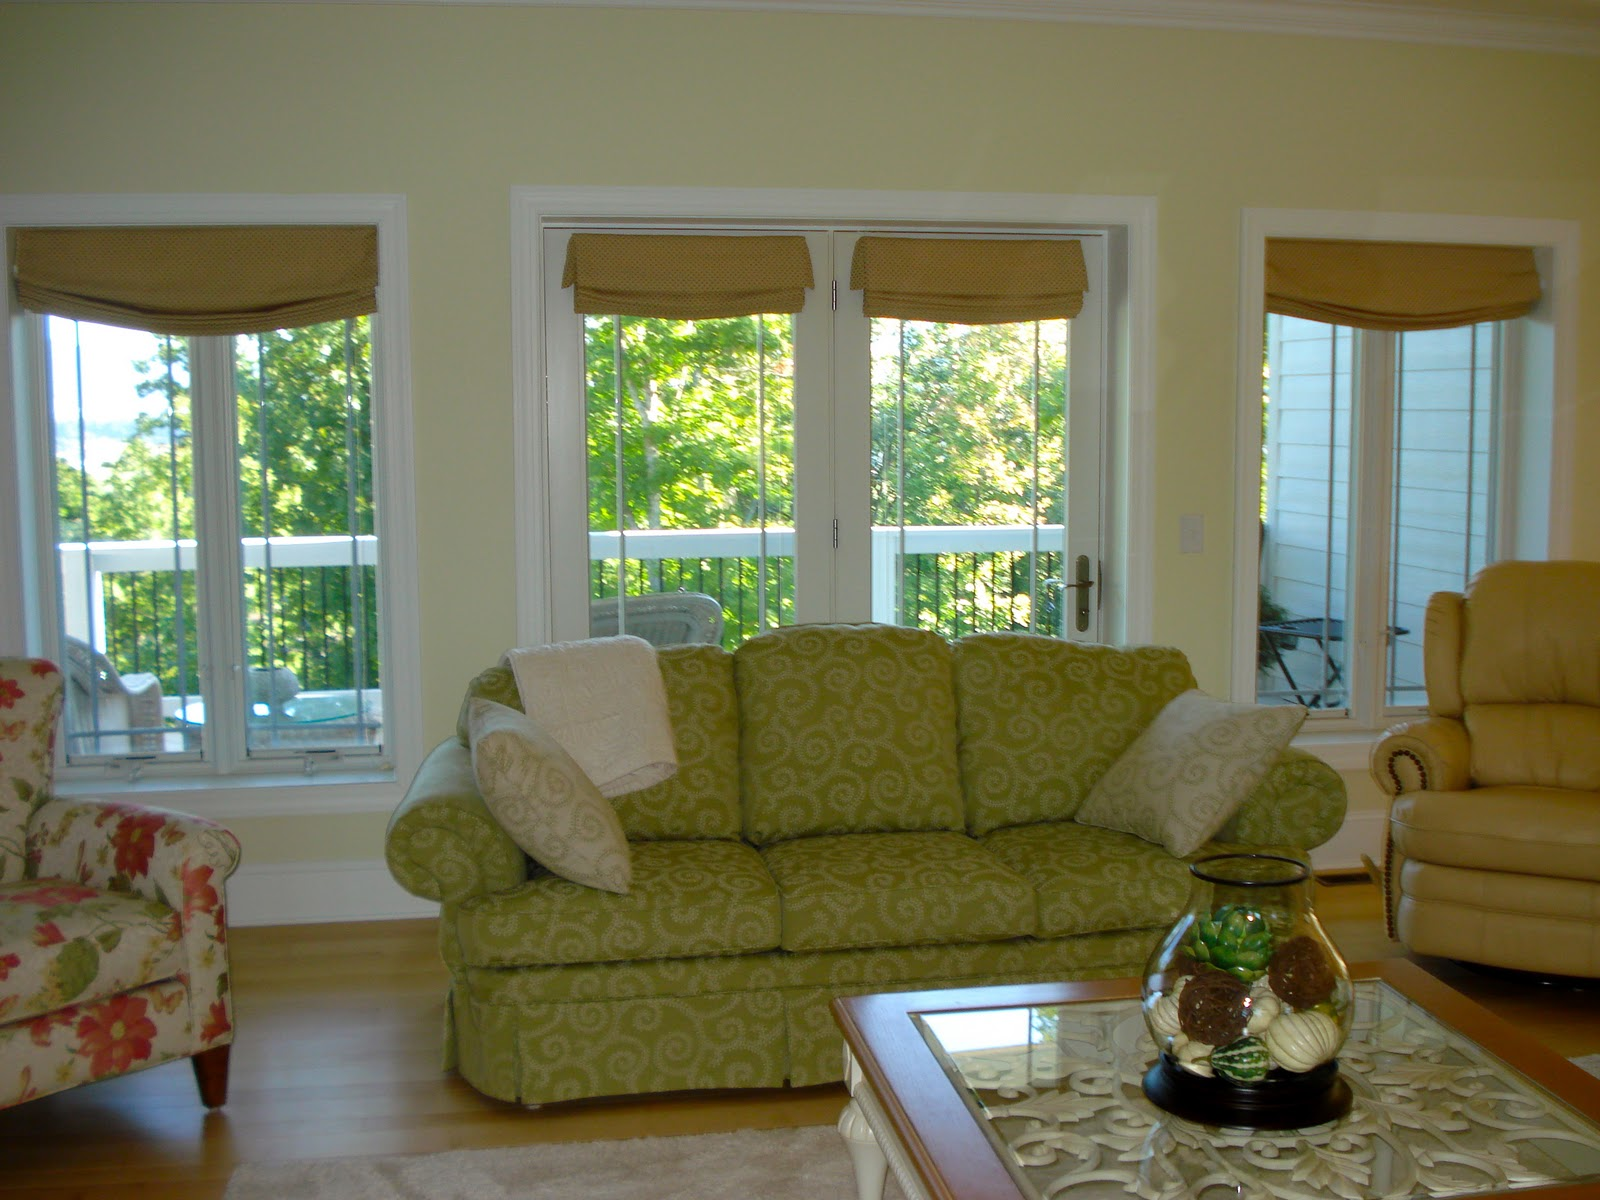 Relaxed Roman Shades for Casual Interiors